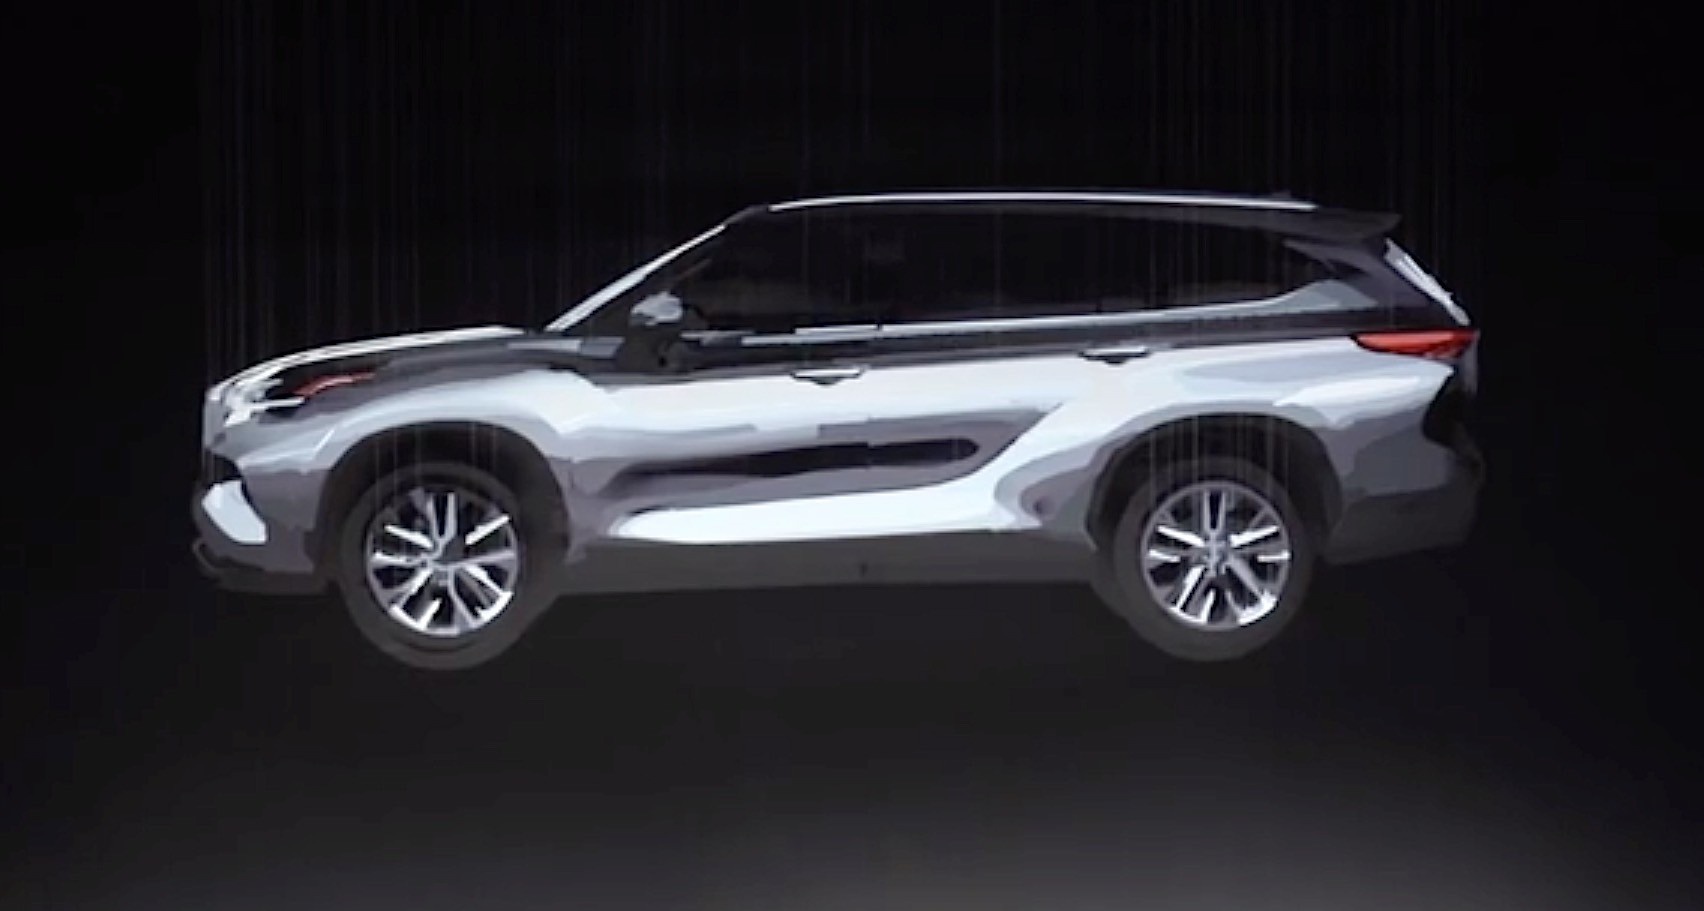 2020 Toyota Highlander Teased in Augmented Reality Before